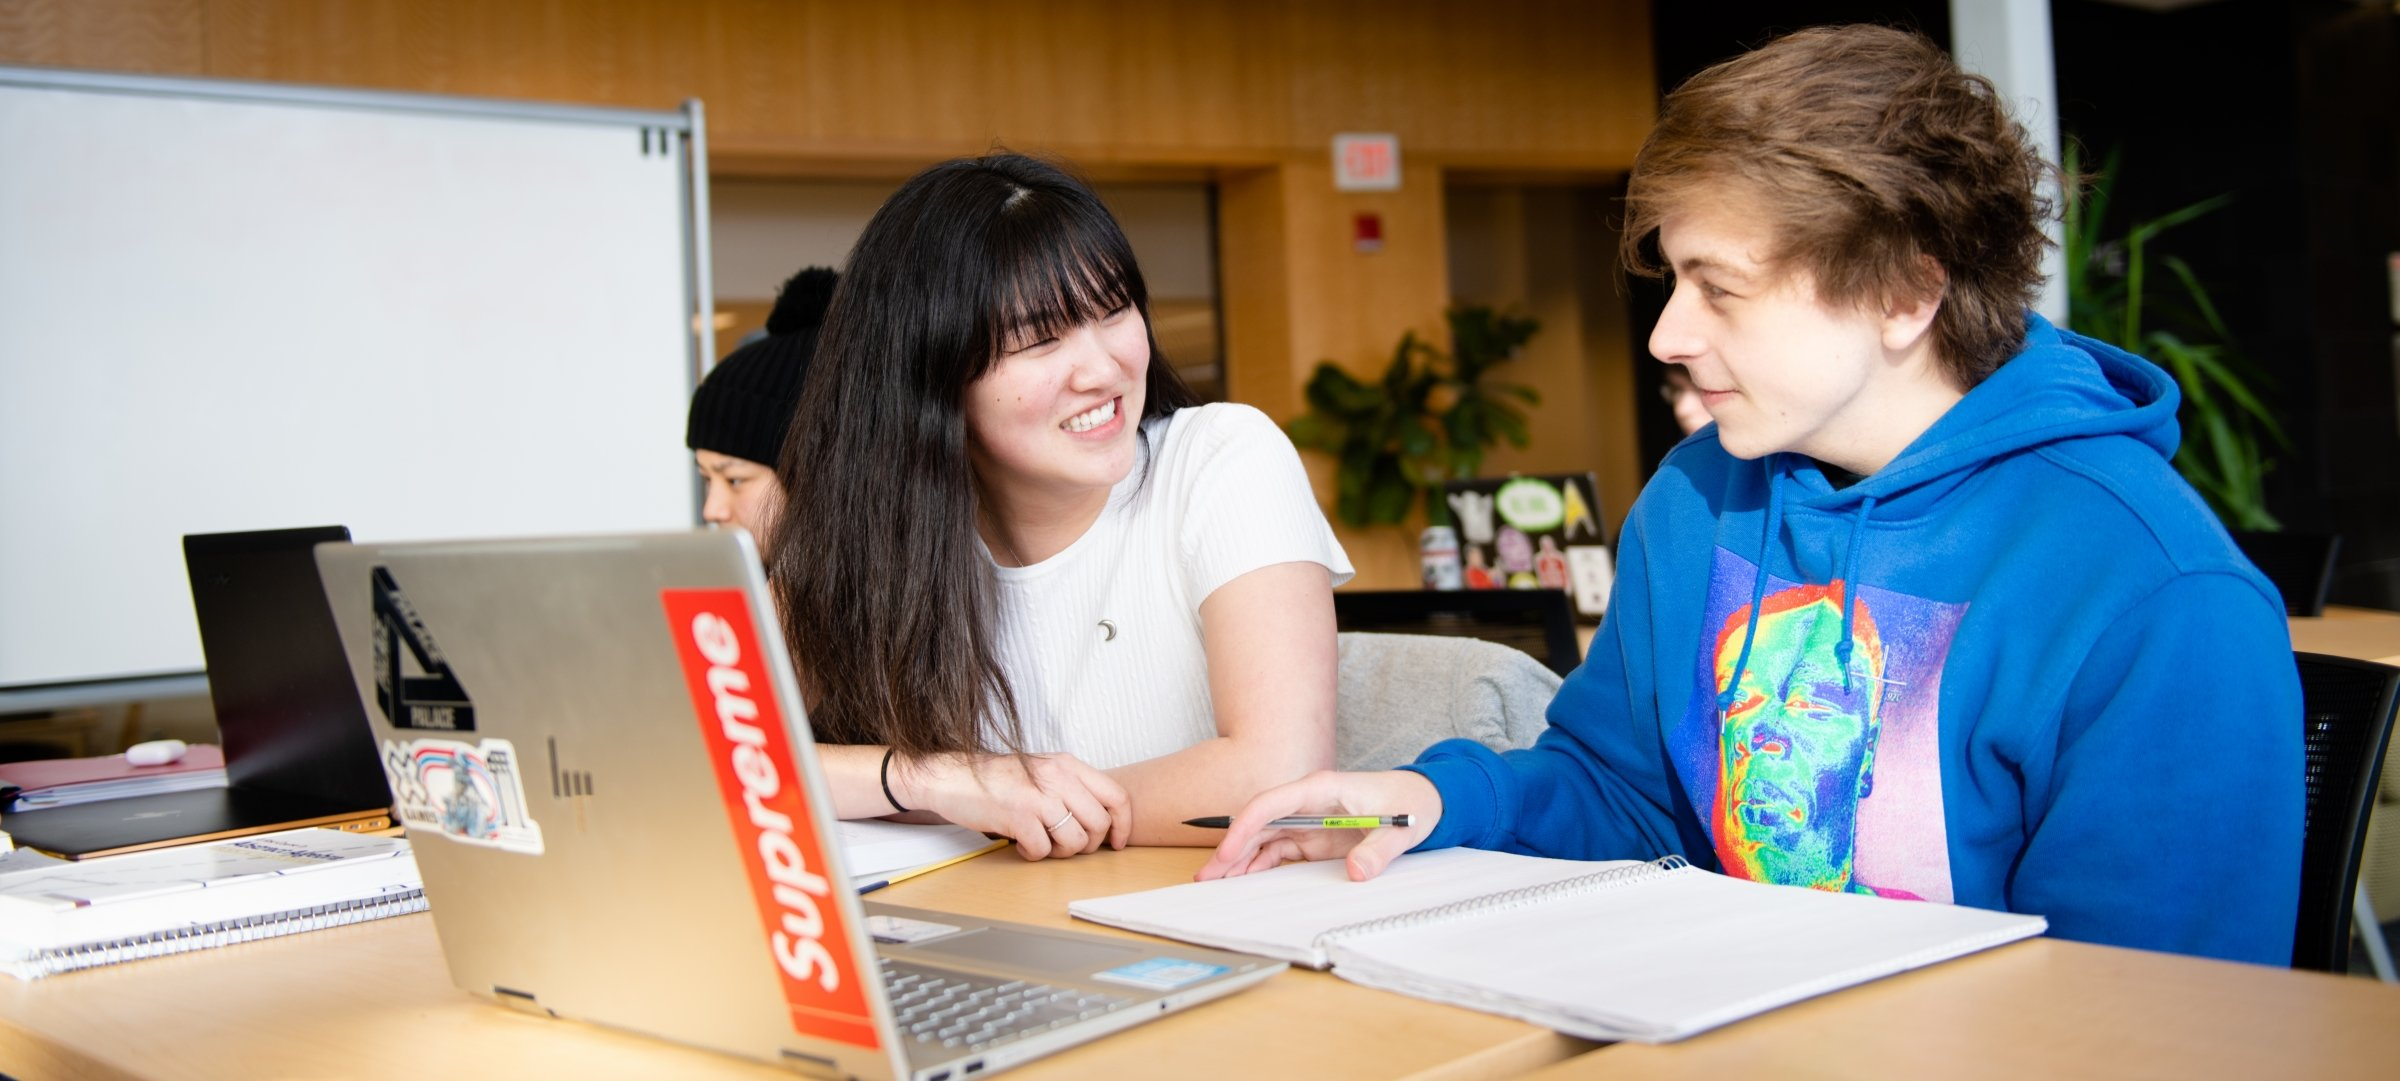 Term paper writing service review